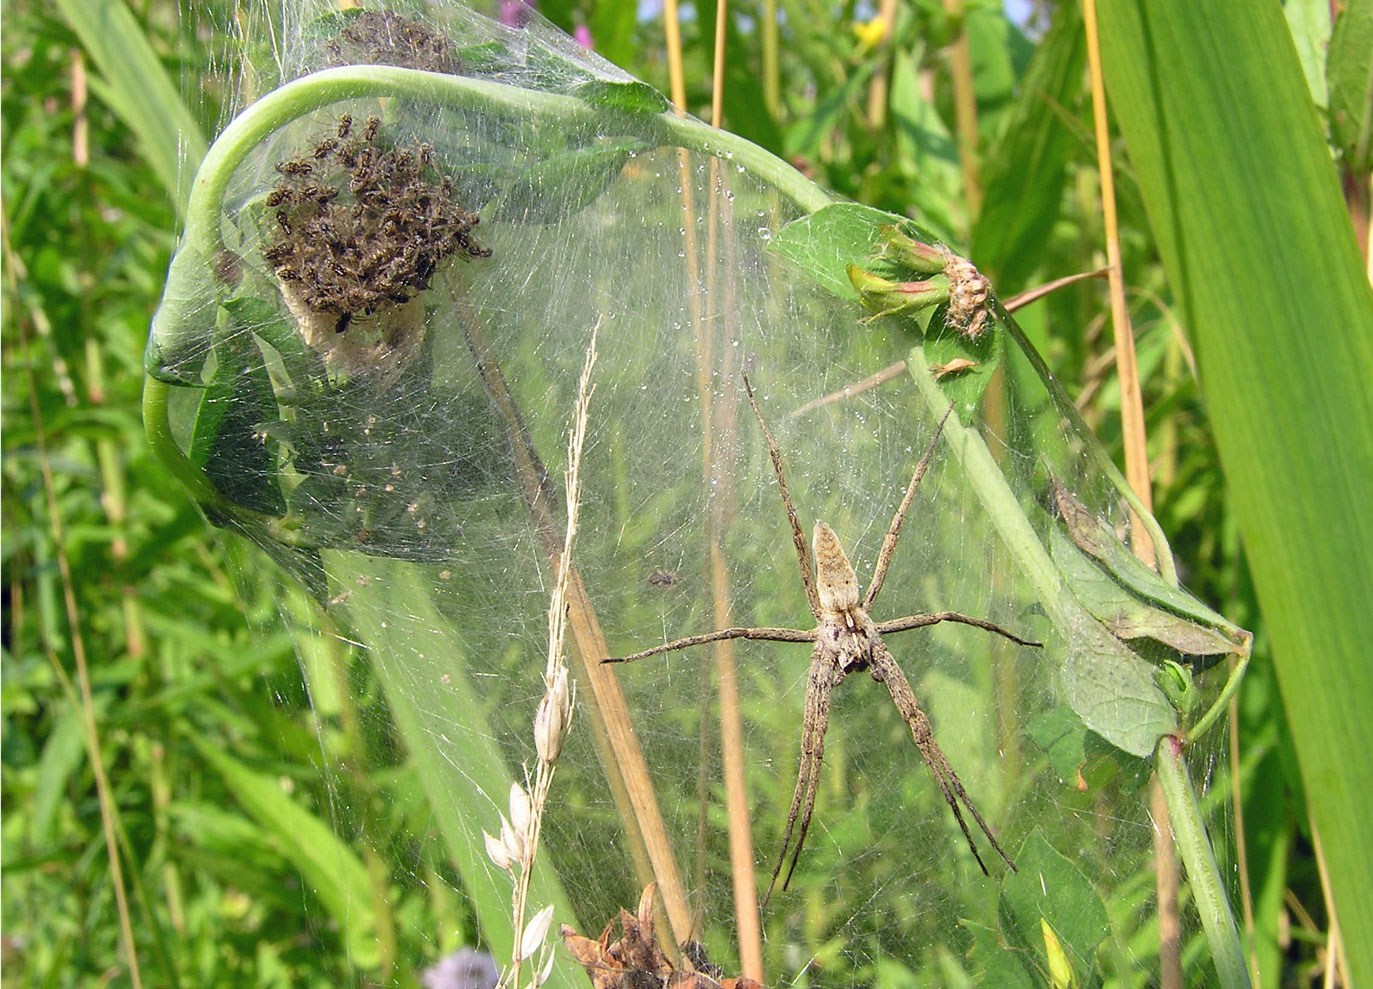 Female Pisaura mirabilis guarding spiderlings in her nursery